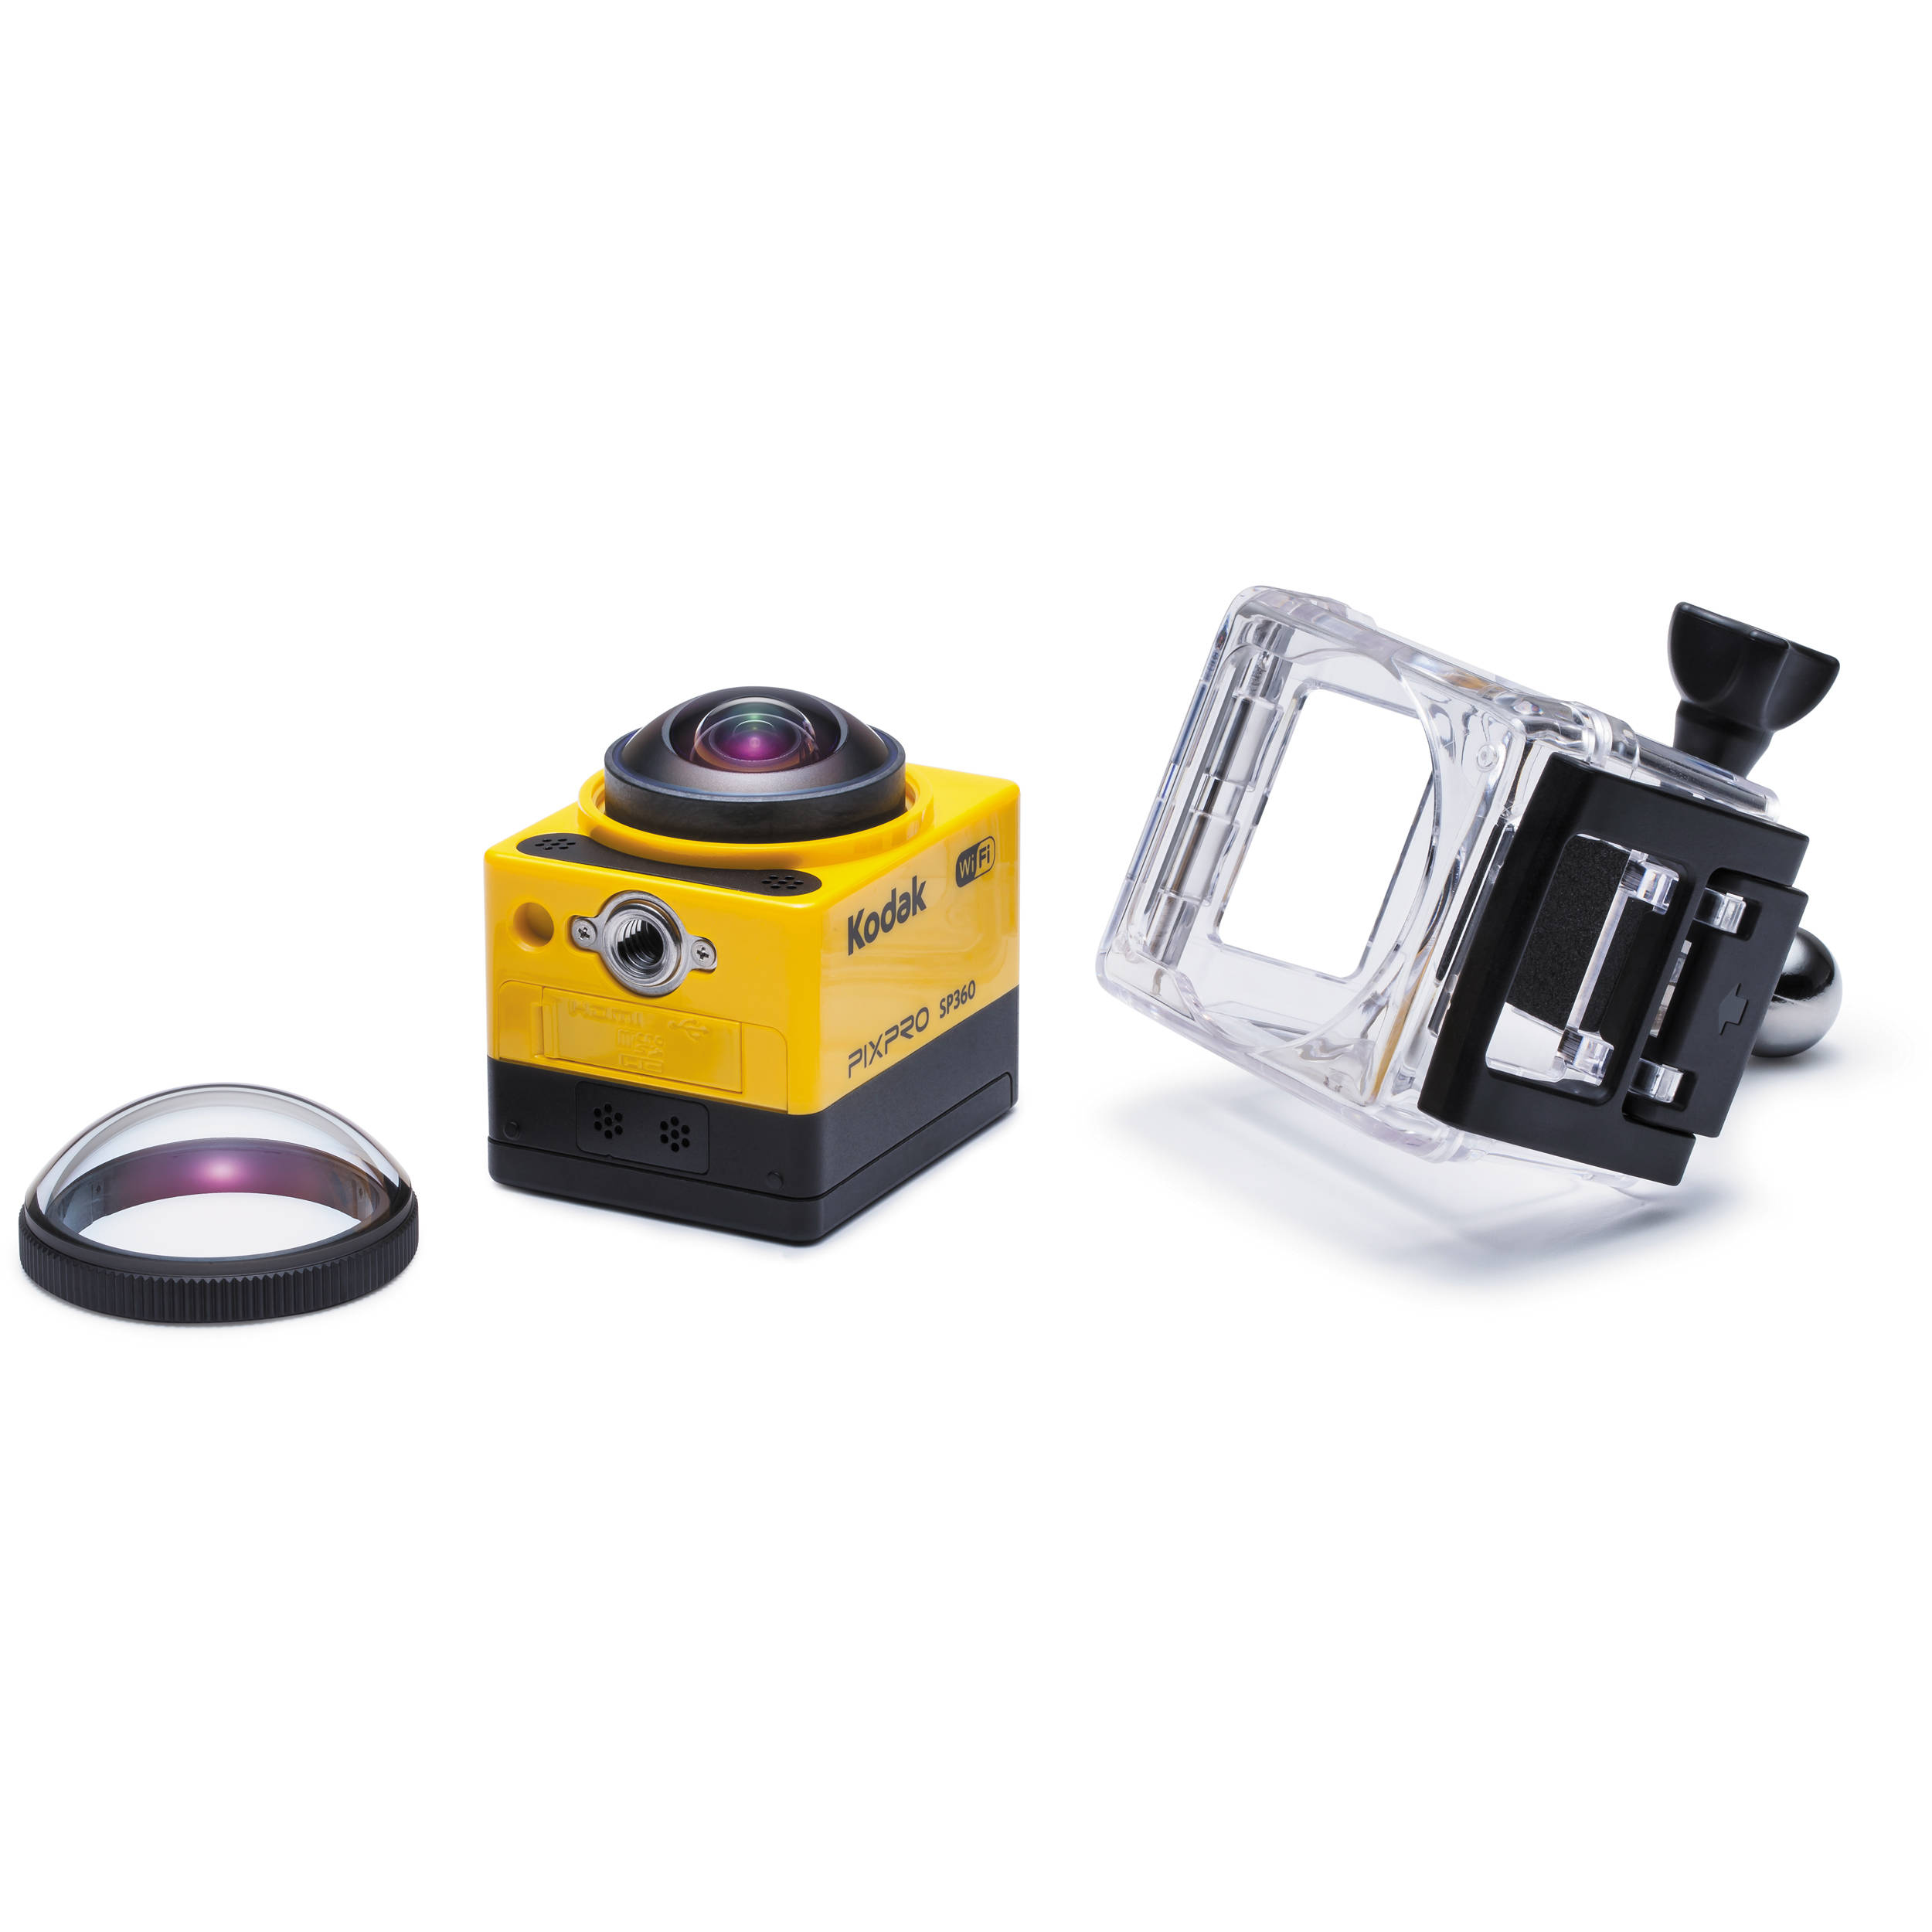 Kodak SP360 Action Camera Drivers Windows